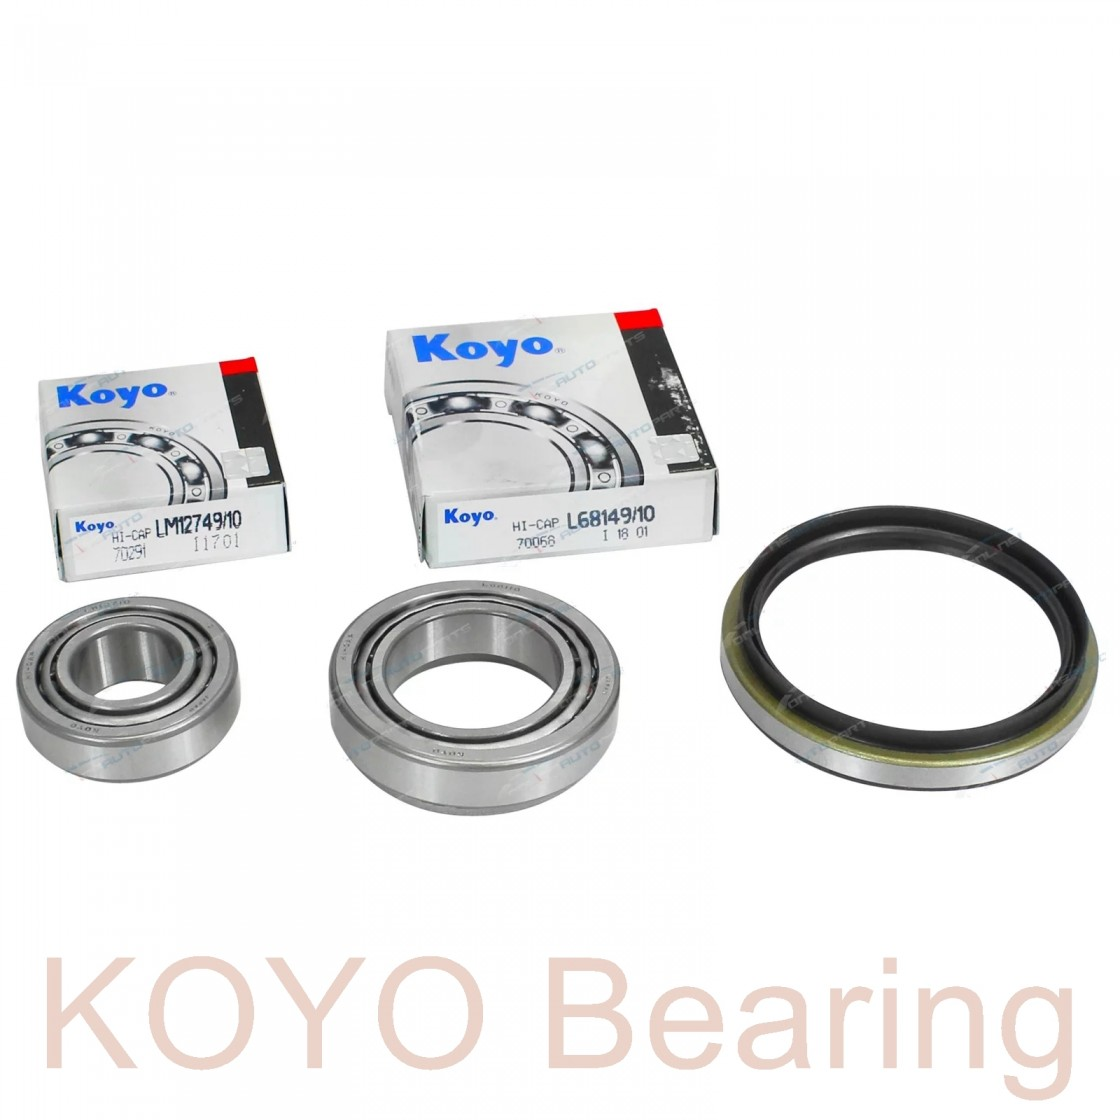 KOYO NK30/20 needle roller bearings